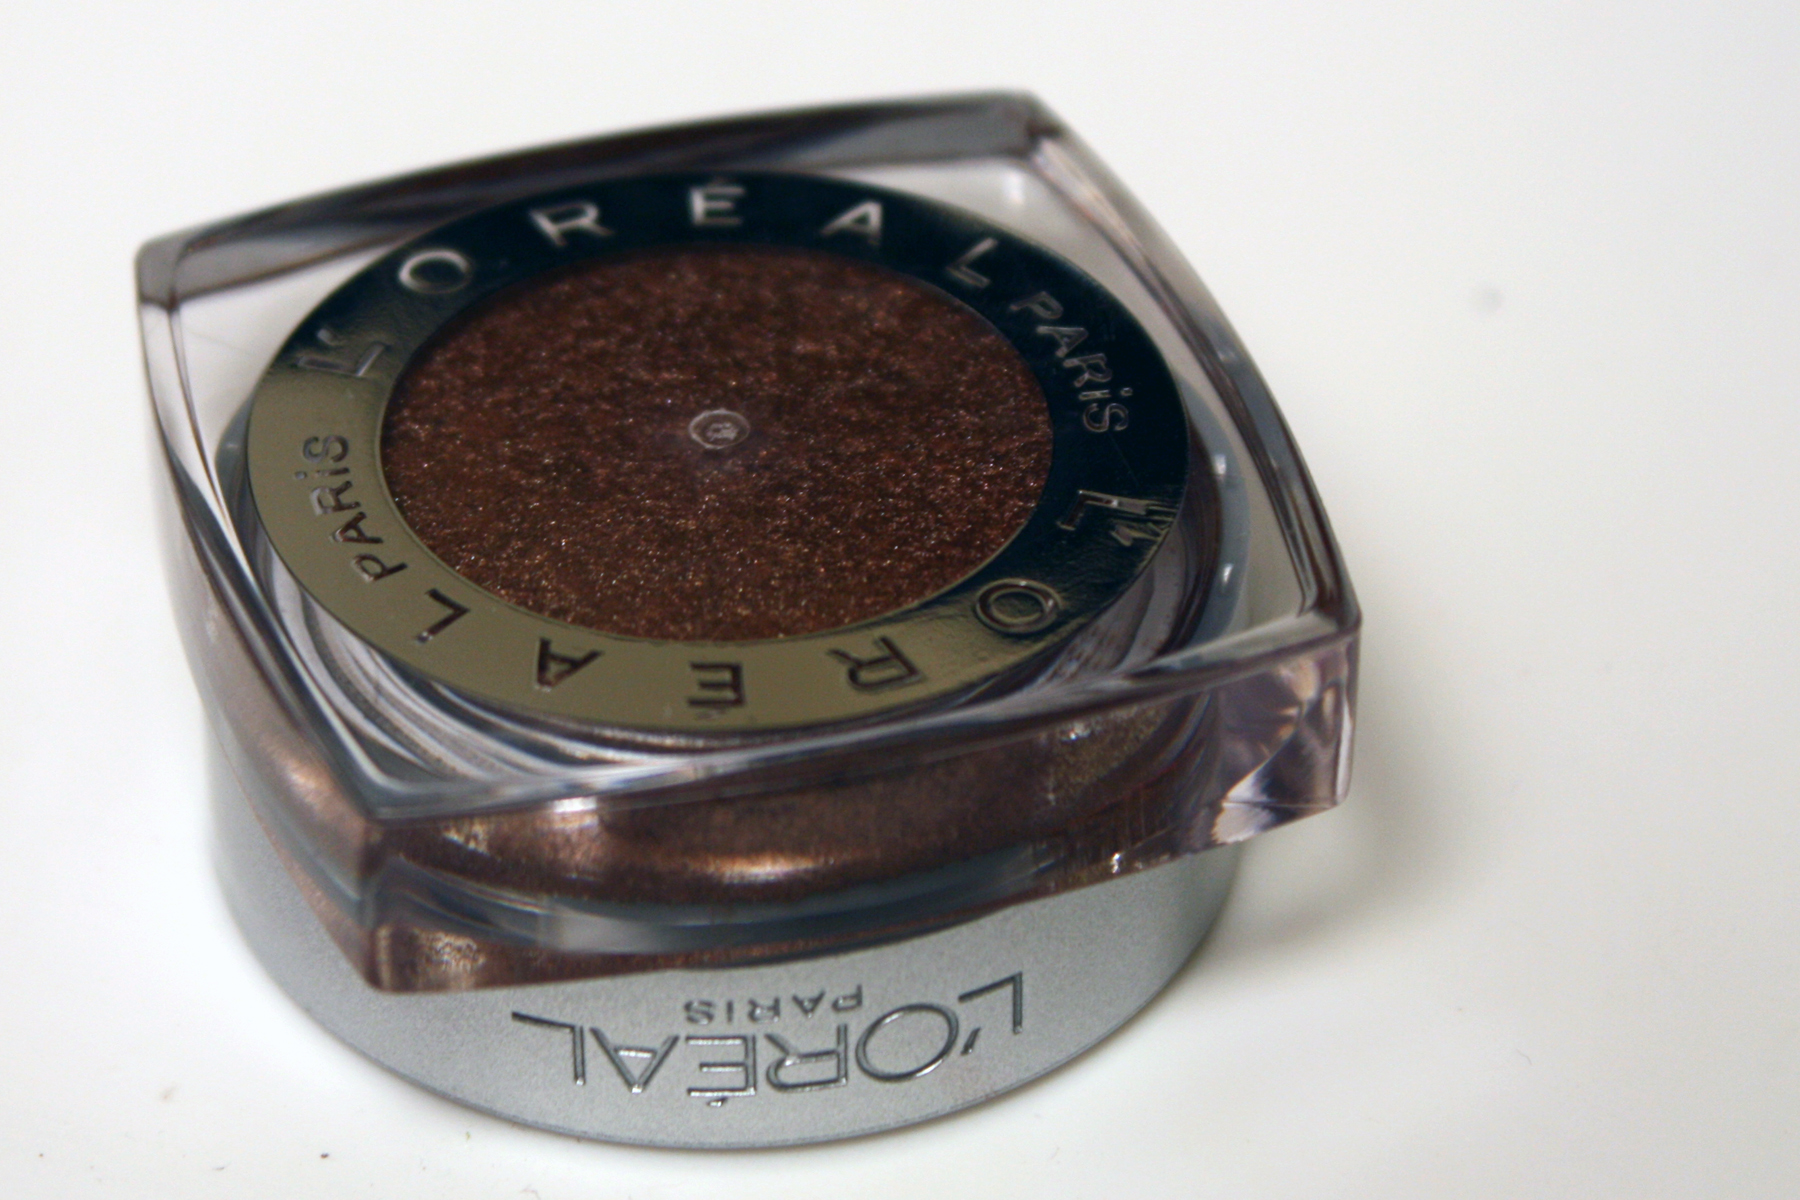 L'Oreal Infallible 24 HR Eyeshadow in Bronzed Taupe (Swatch)